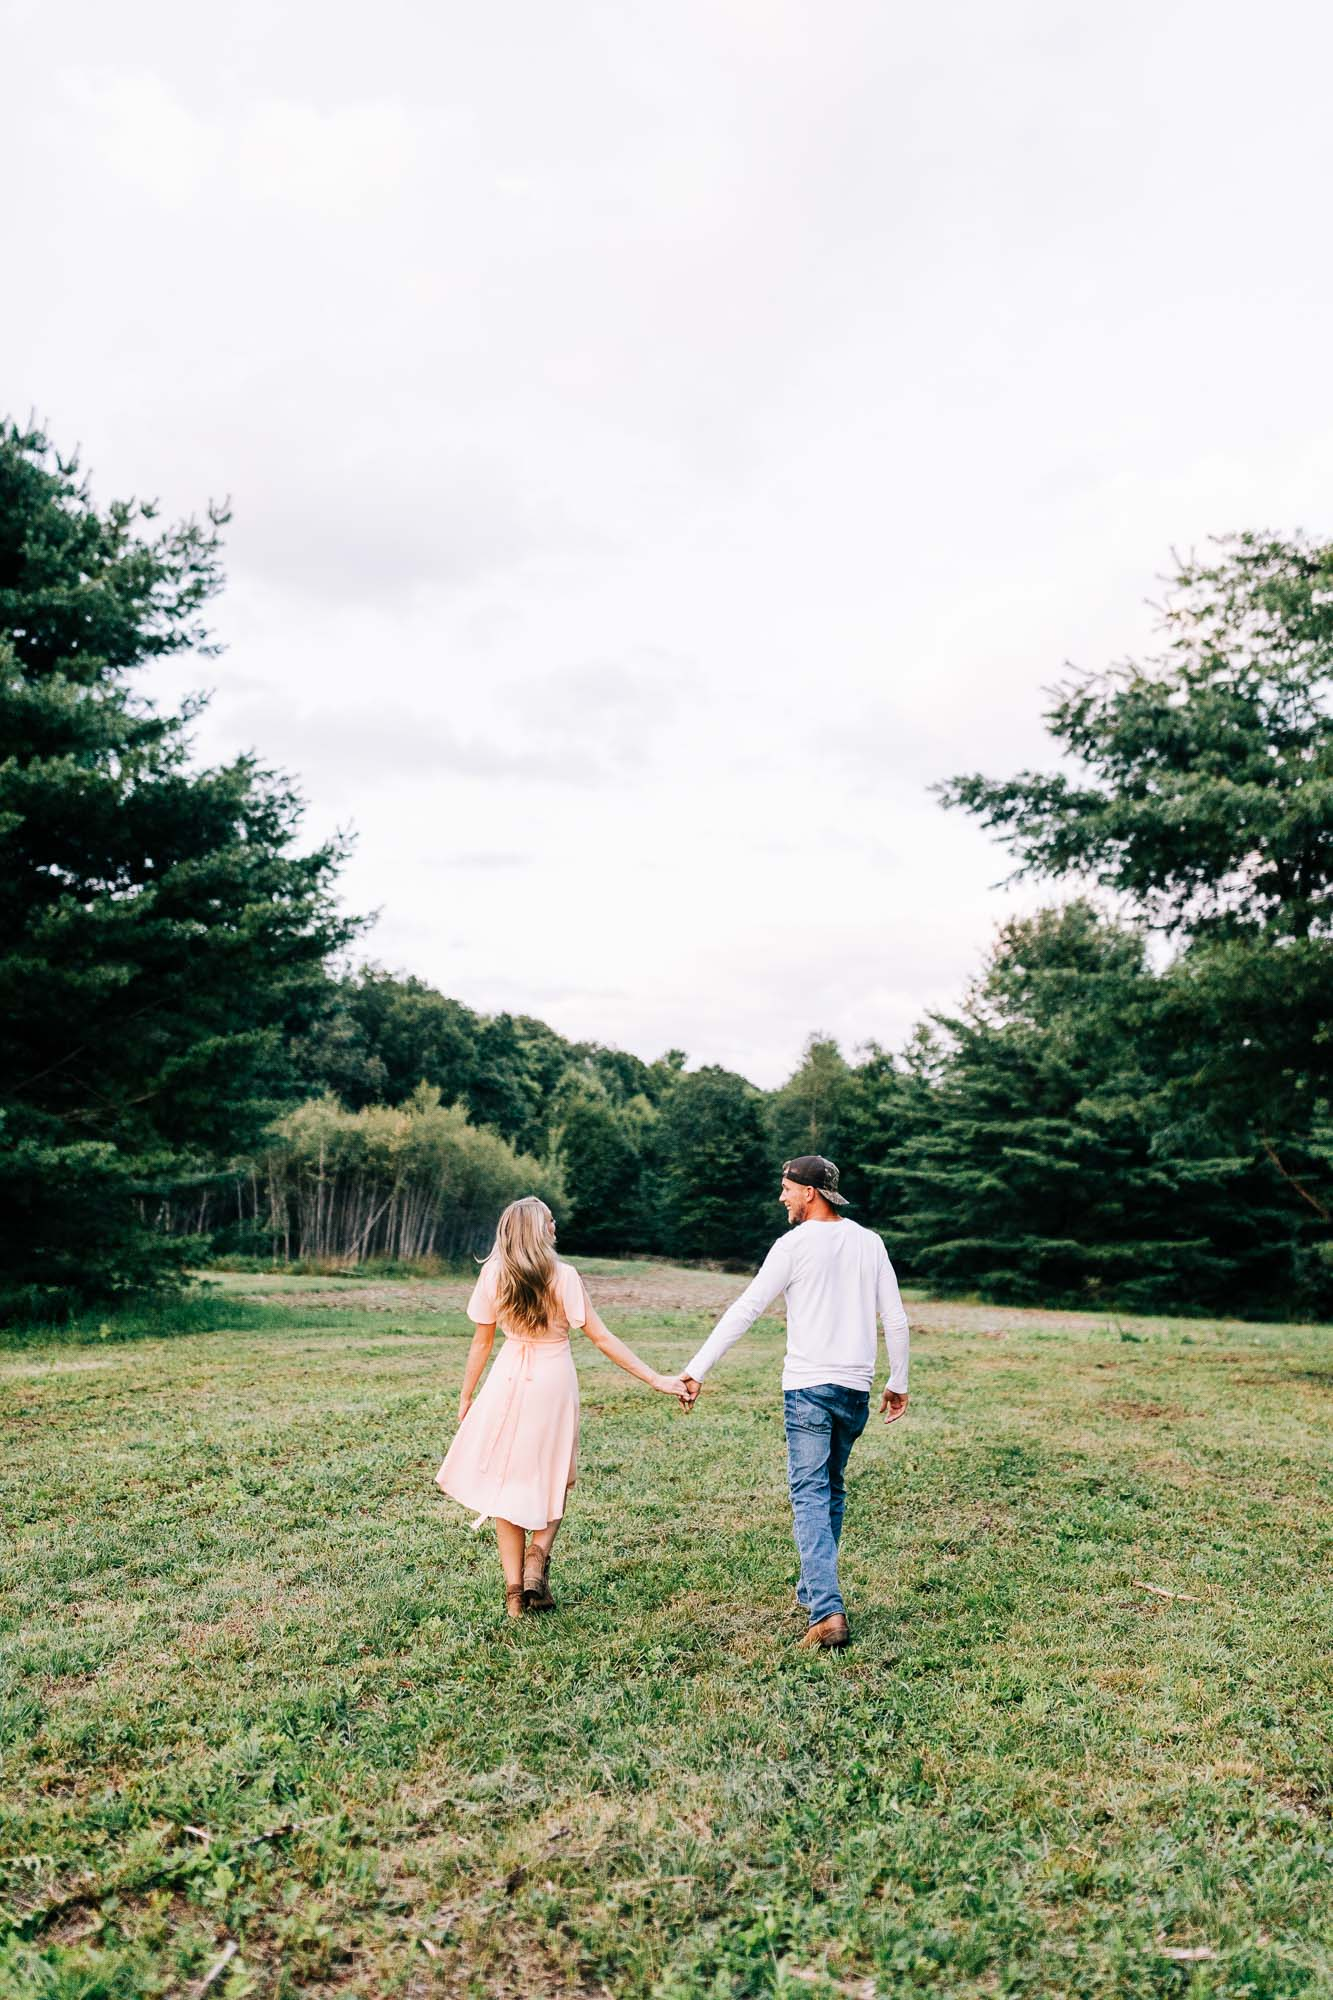 Sweet-valley-engagement-session-8760.jpg